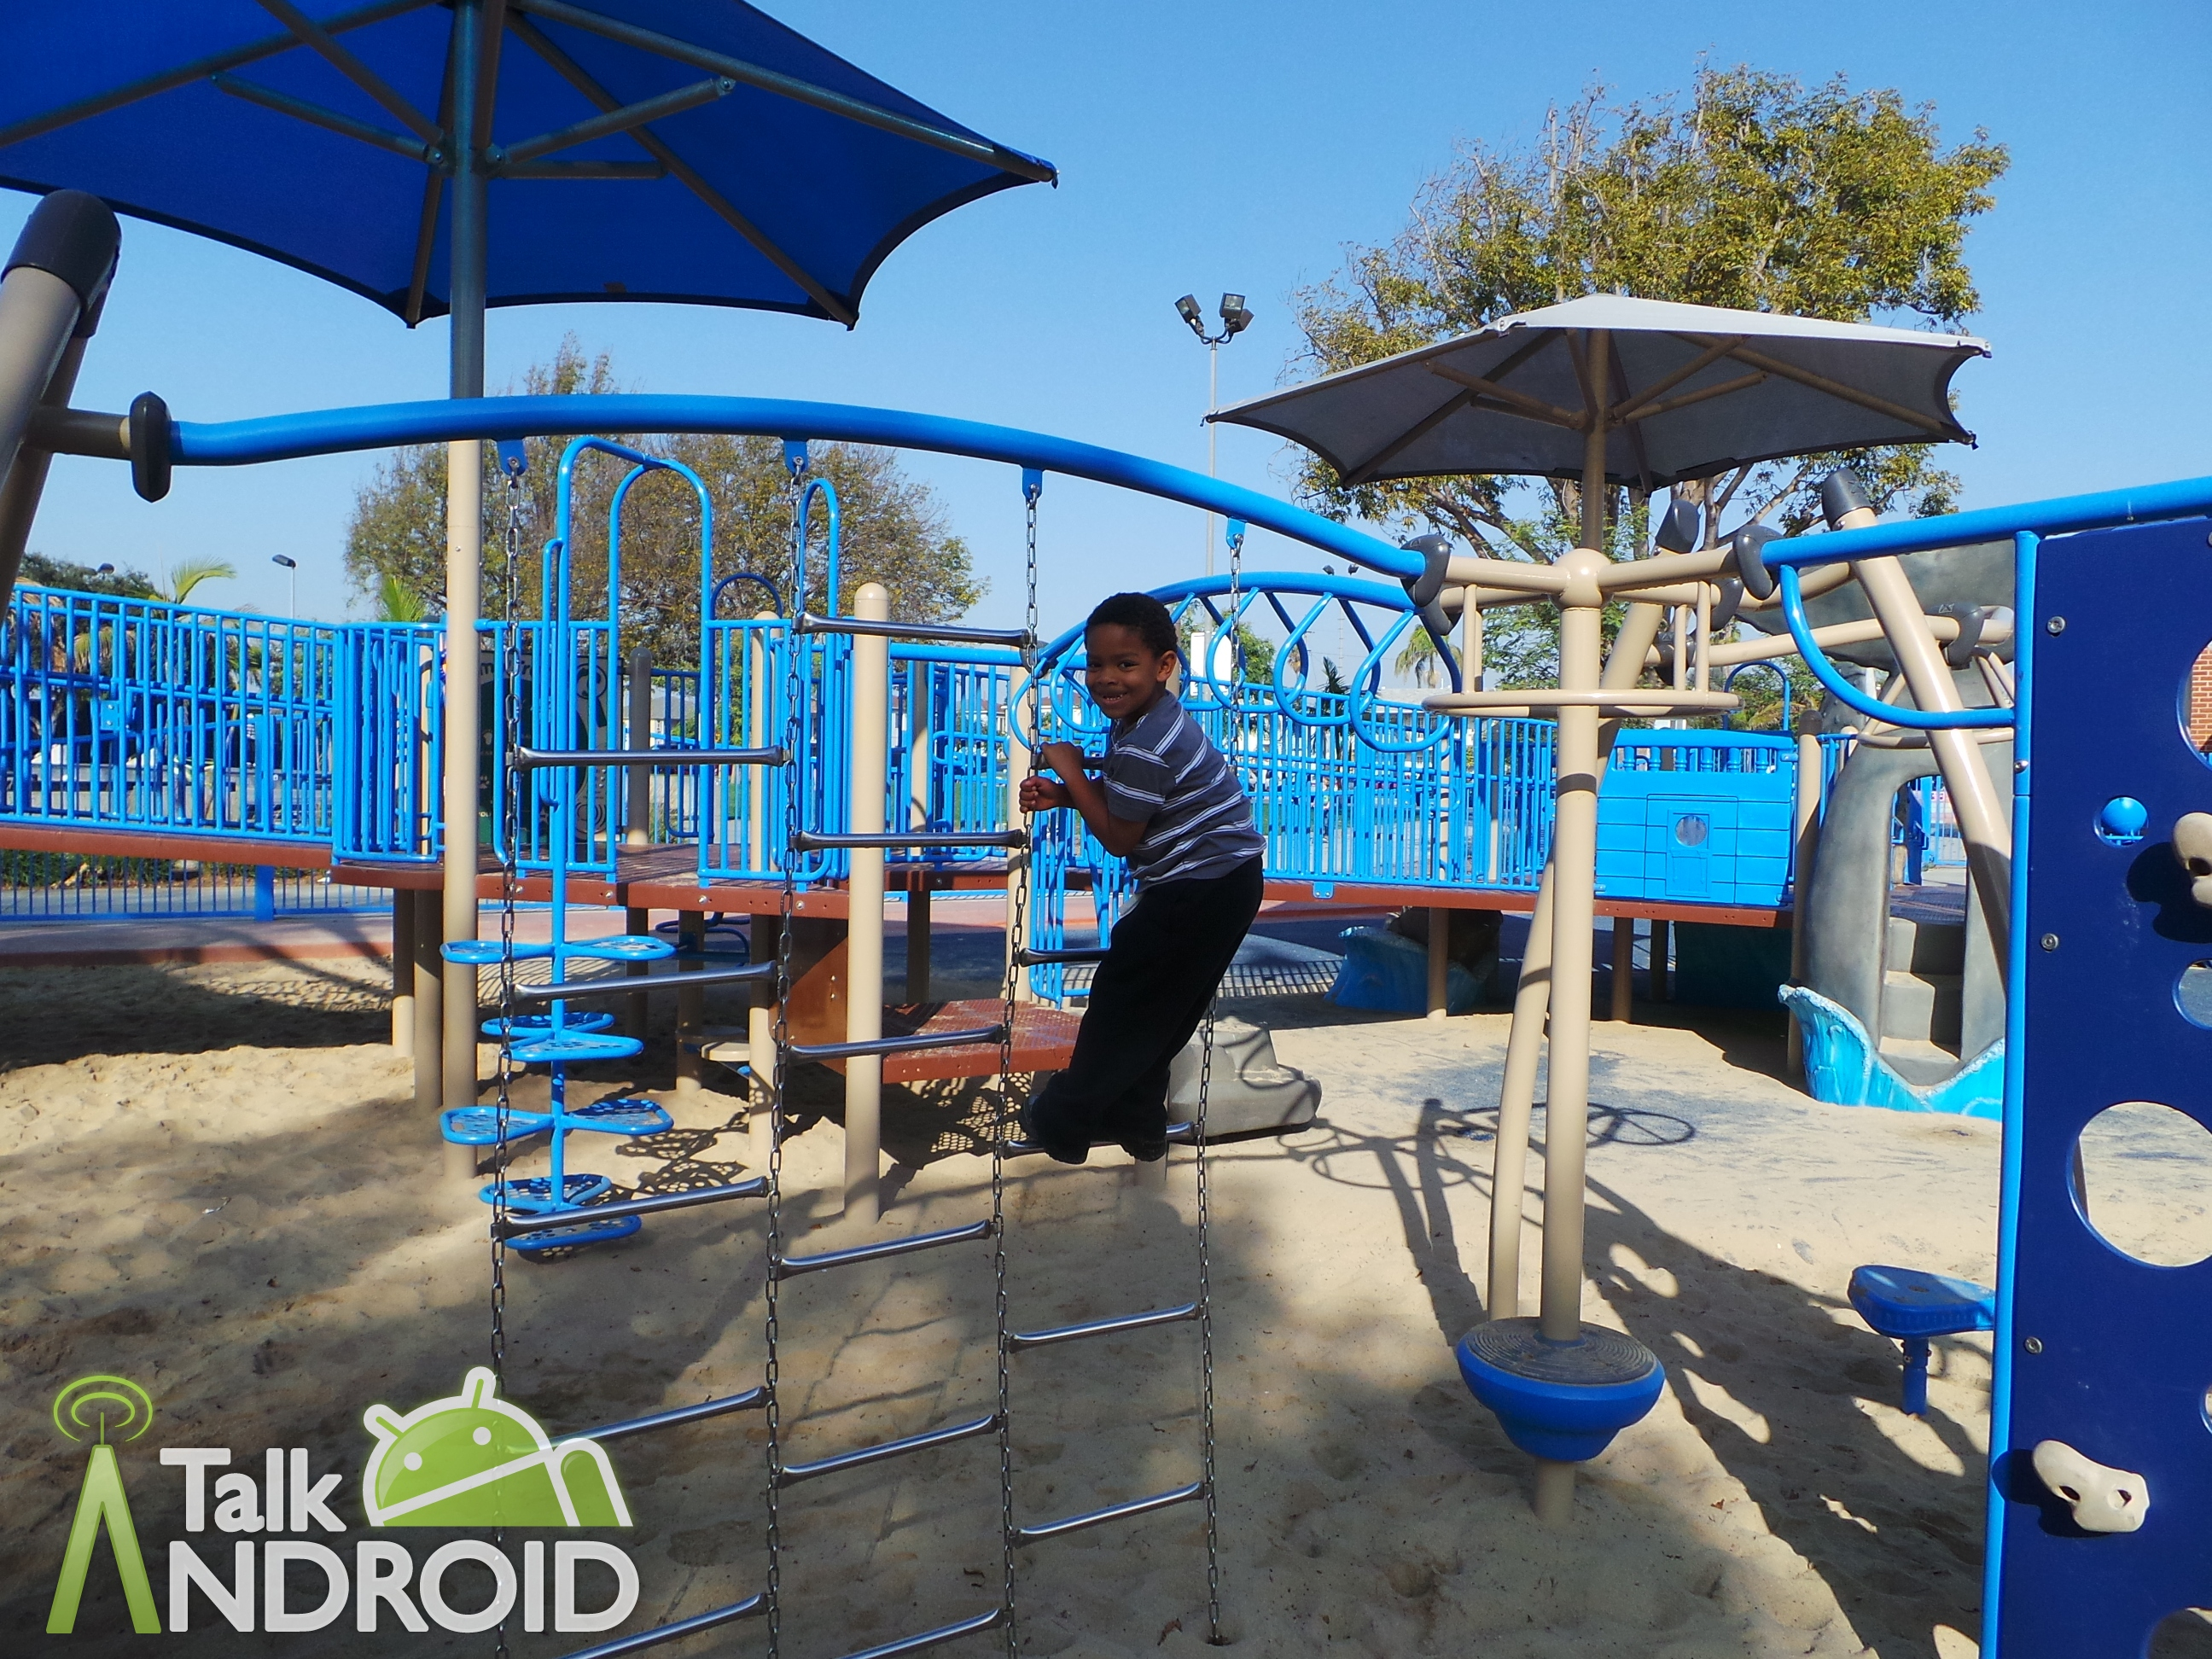 Samsung_Galaxy_Camera_Review_Westchester_Park_Nephew_Smart_Mode